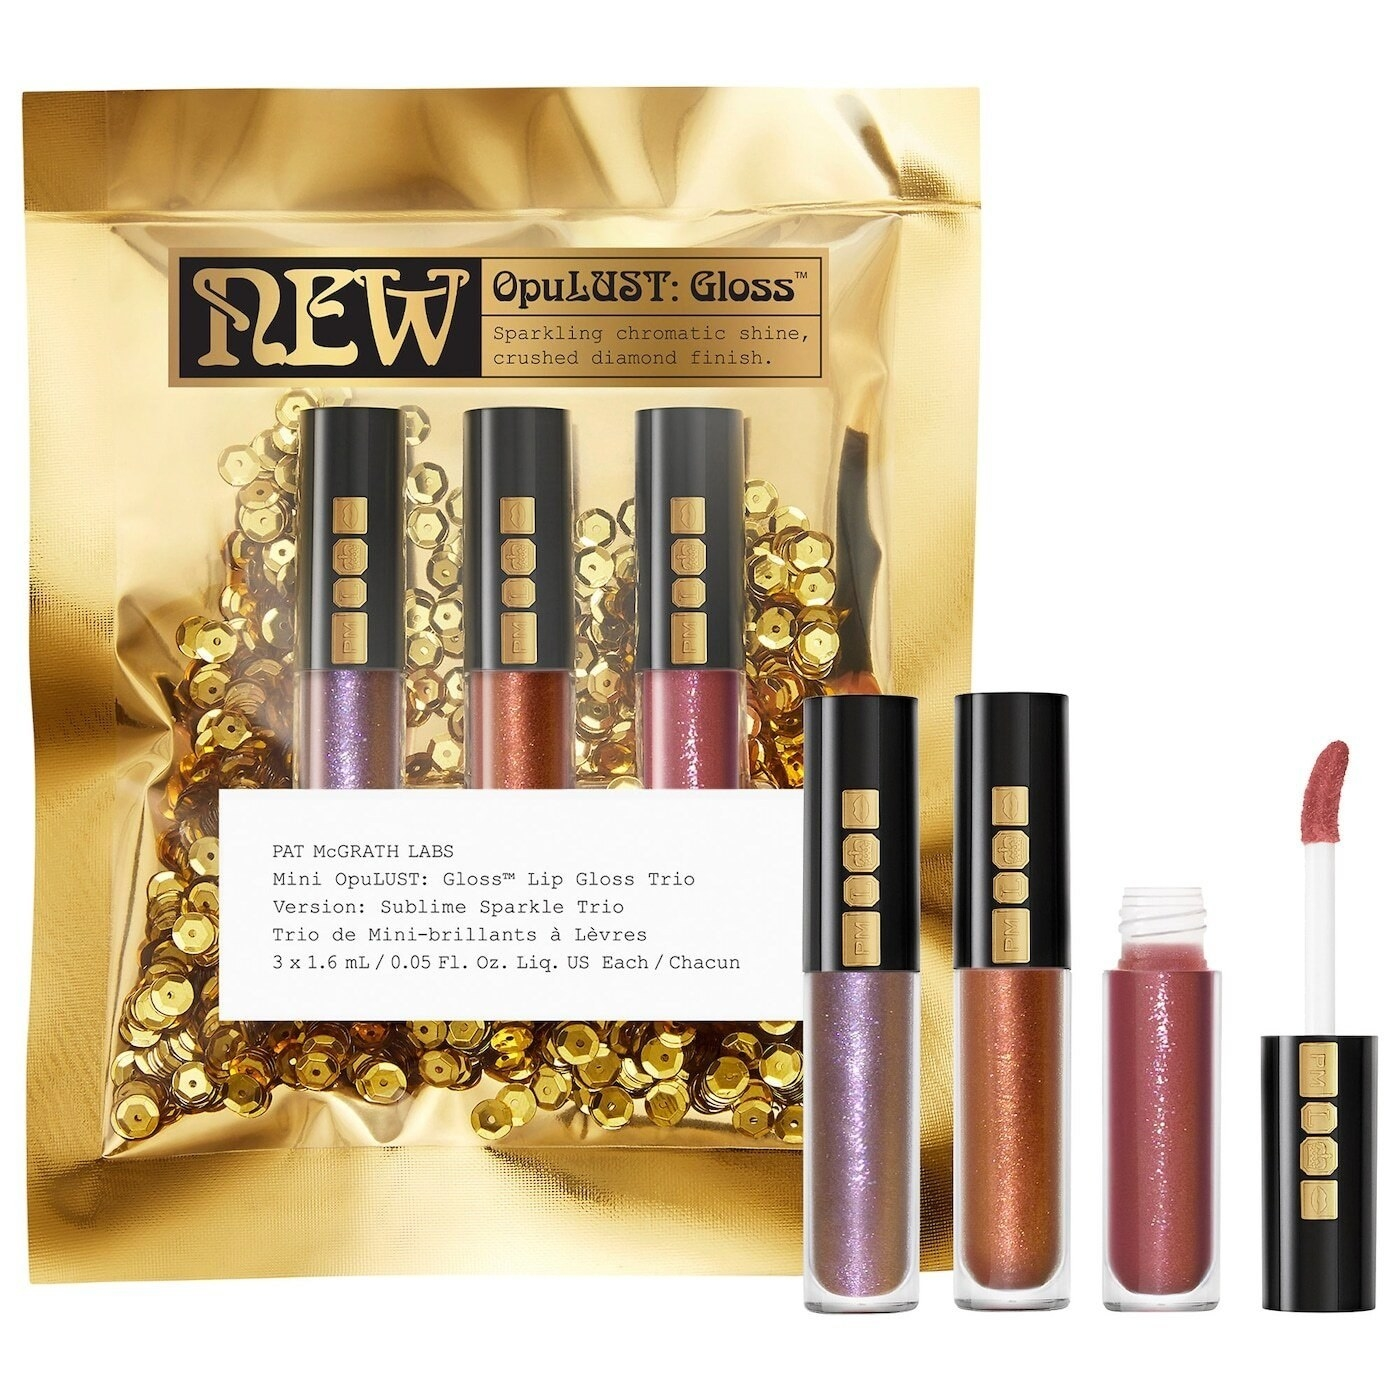 purple, rose gold, and pink chromatic lip glosses in gold packaging